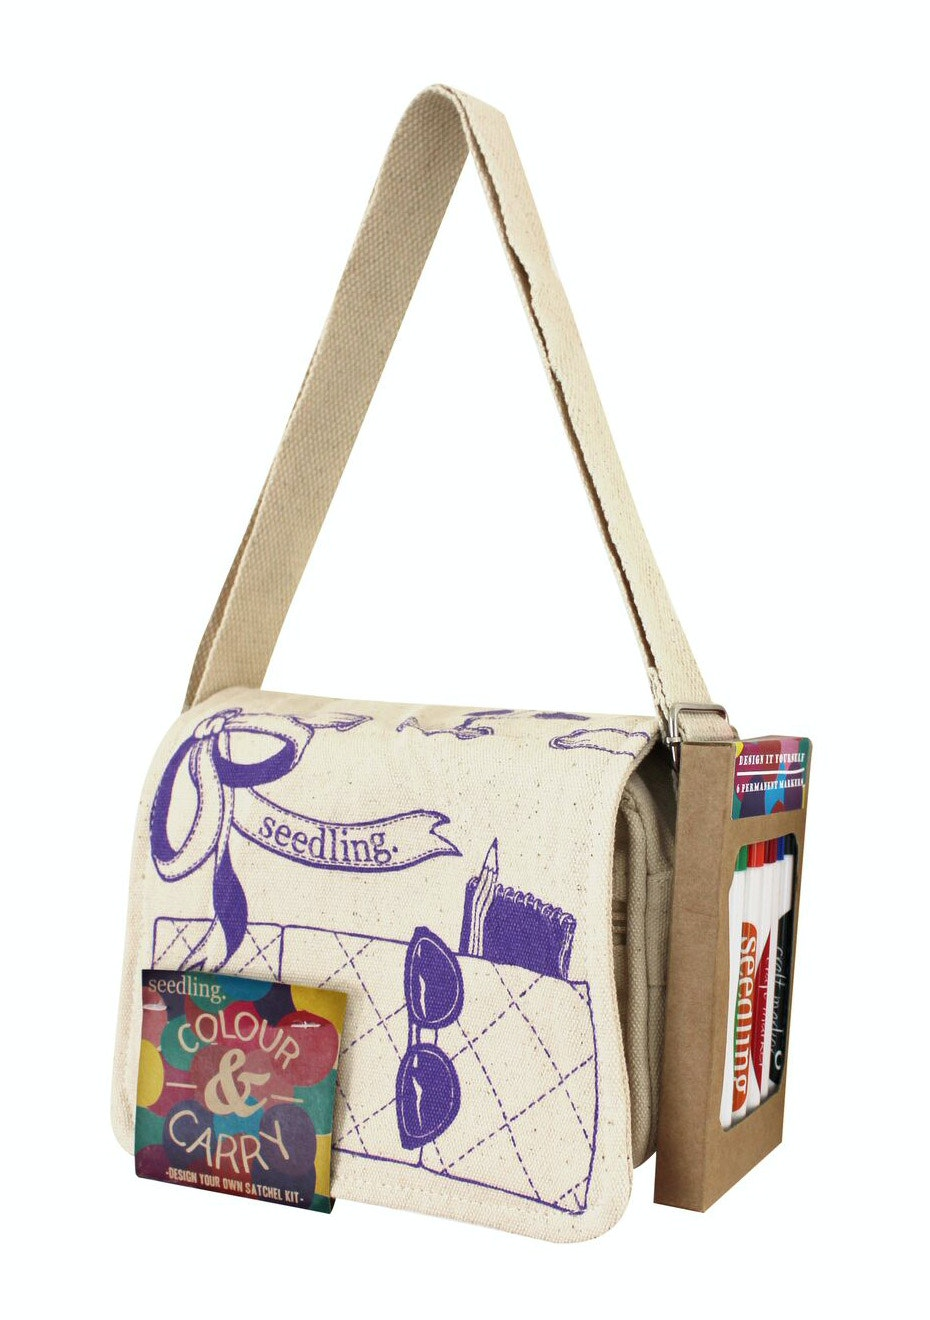 Seedling - Colour and Carry Satchel